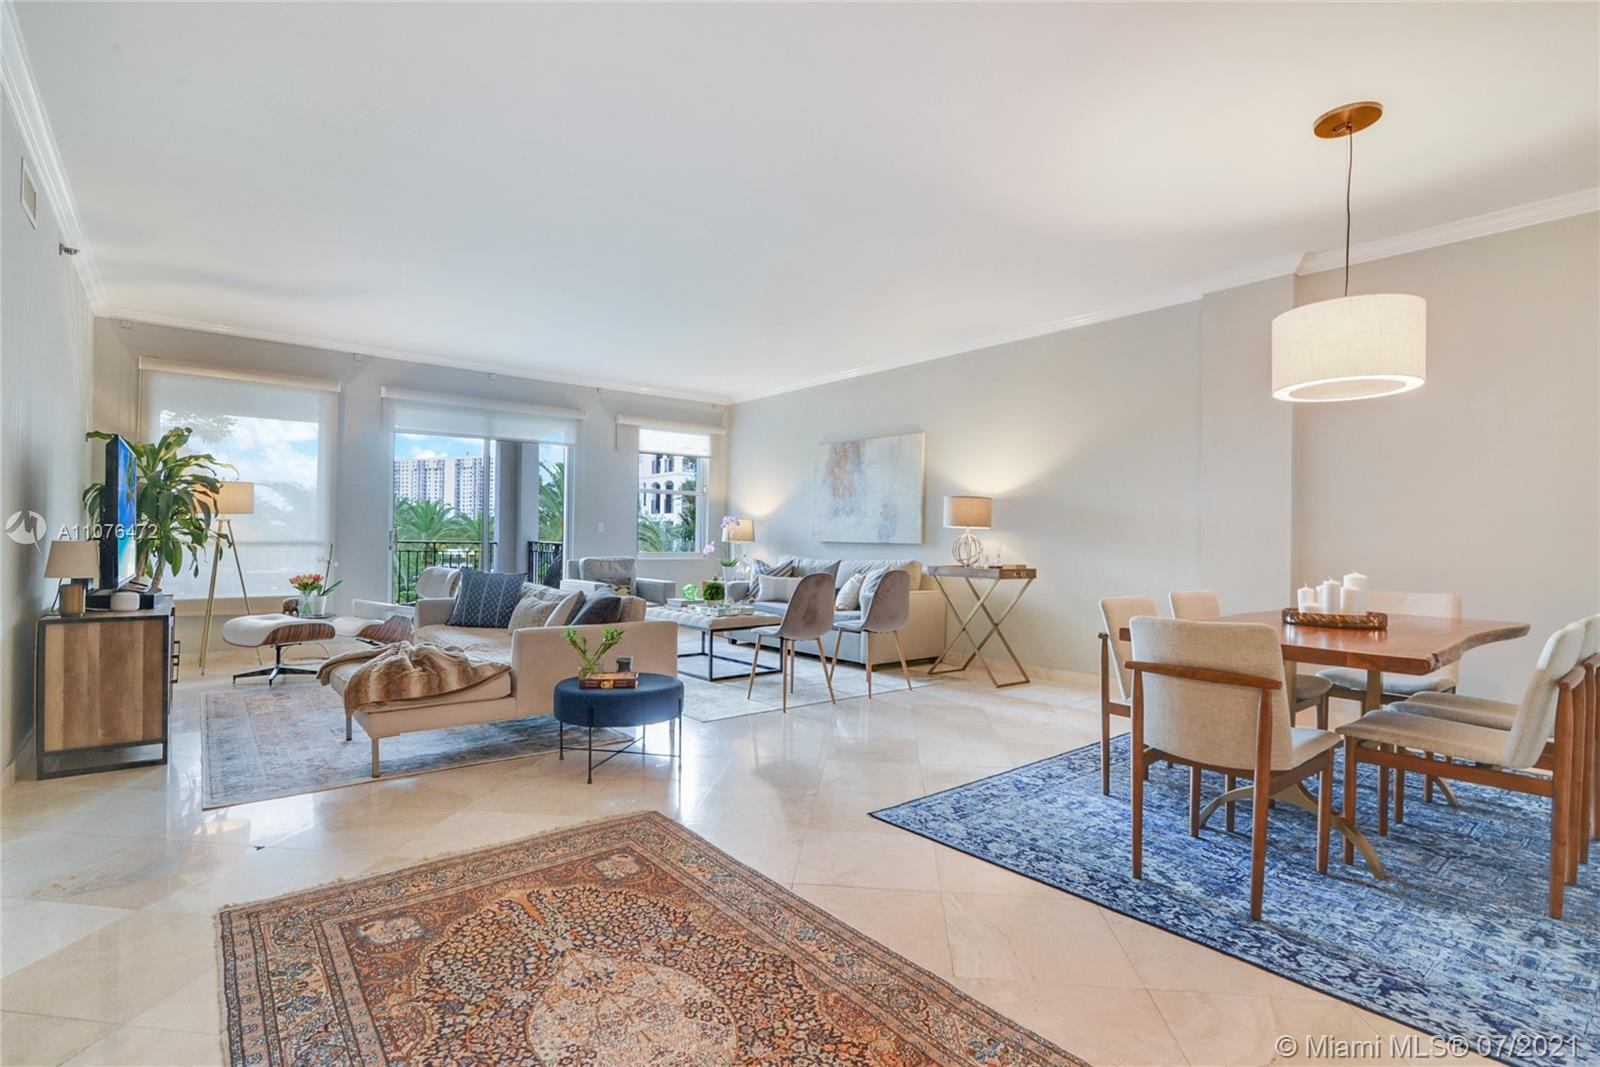 MUST SEE Beautiful 2 BED, 2 BATHS WITH 1945 SQ.FT. unit in the exclusive Mediterranean Village of Wi